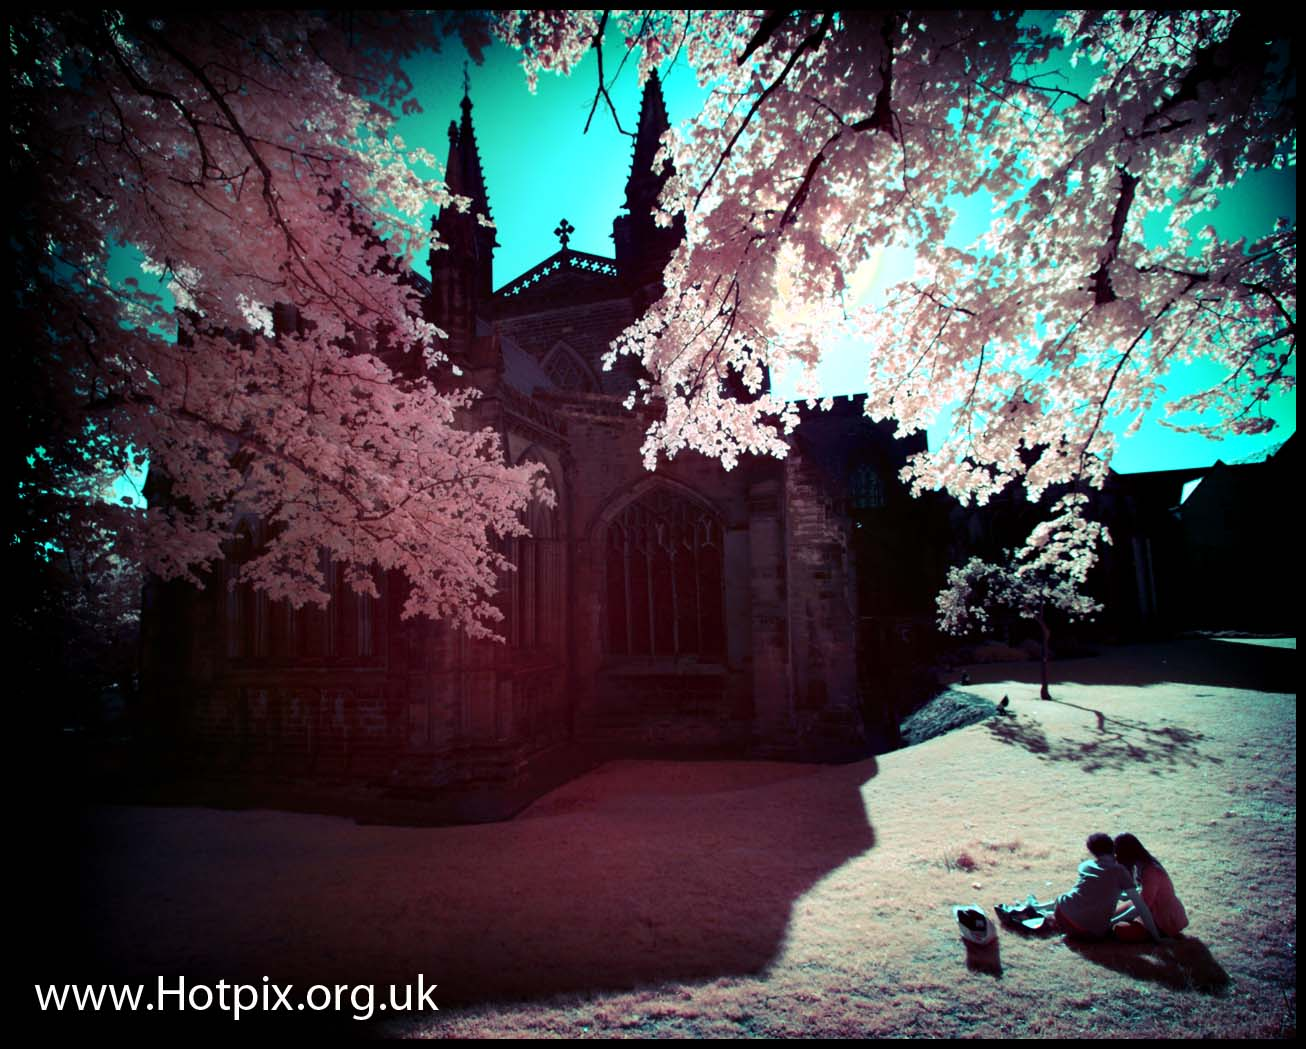 Chester,cheshire,cheshit,west,uk,england,tony,smith,tonysmith,hotpix,church,garden,cathedral,cathedrals,infra,red,infrared,IR,720nm,72R,R72,Hoya,false,color,colour,falsecolour,falsecolor,Europe,lover,lovers,kiss,kissing,couple,secret,picnic,graveyard